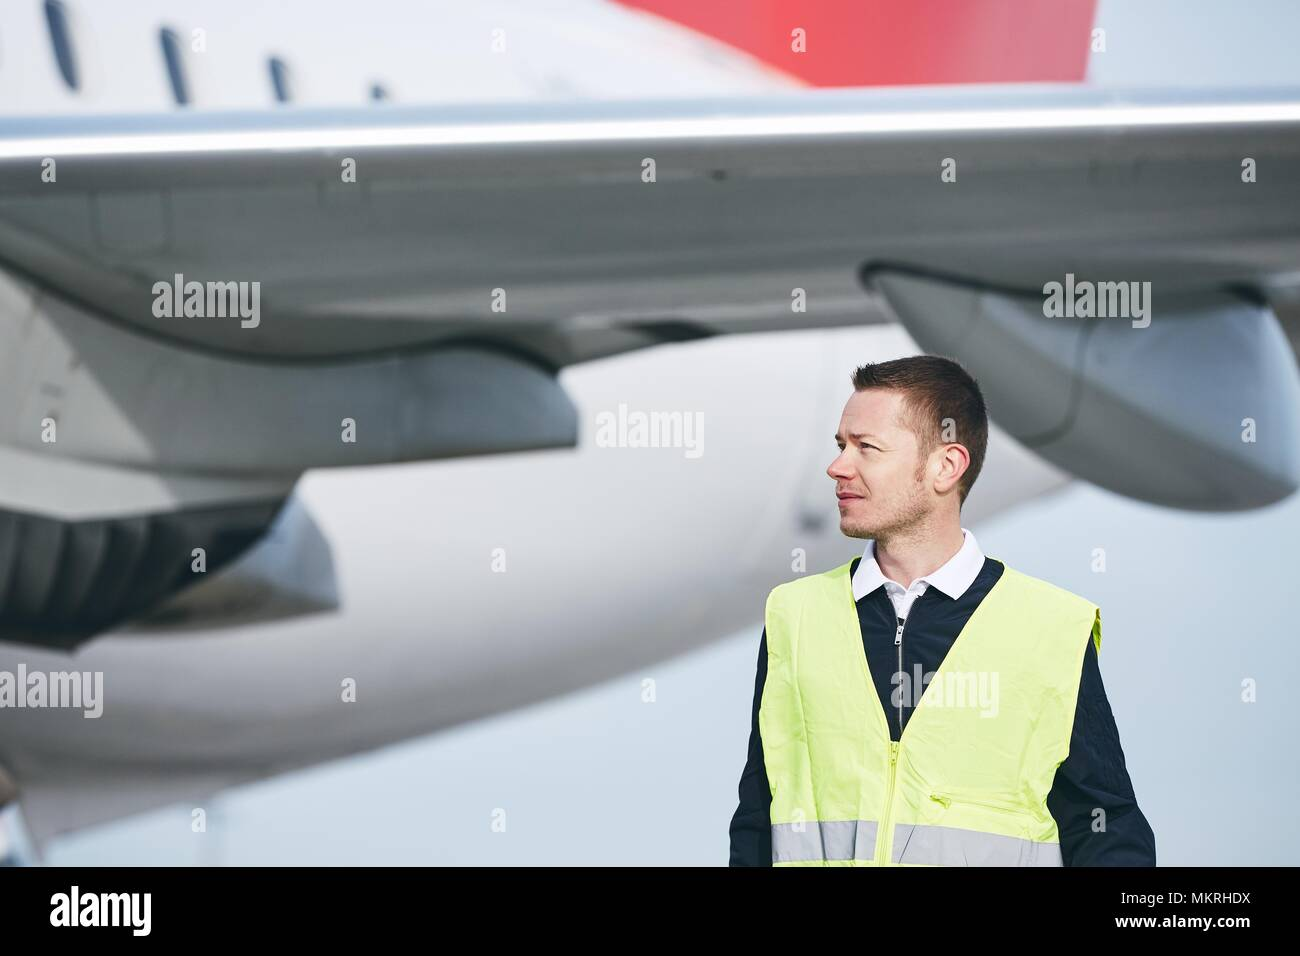 Member ground crew worker at the airport checking airplane before flight. - Stock Image